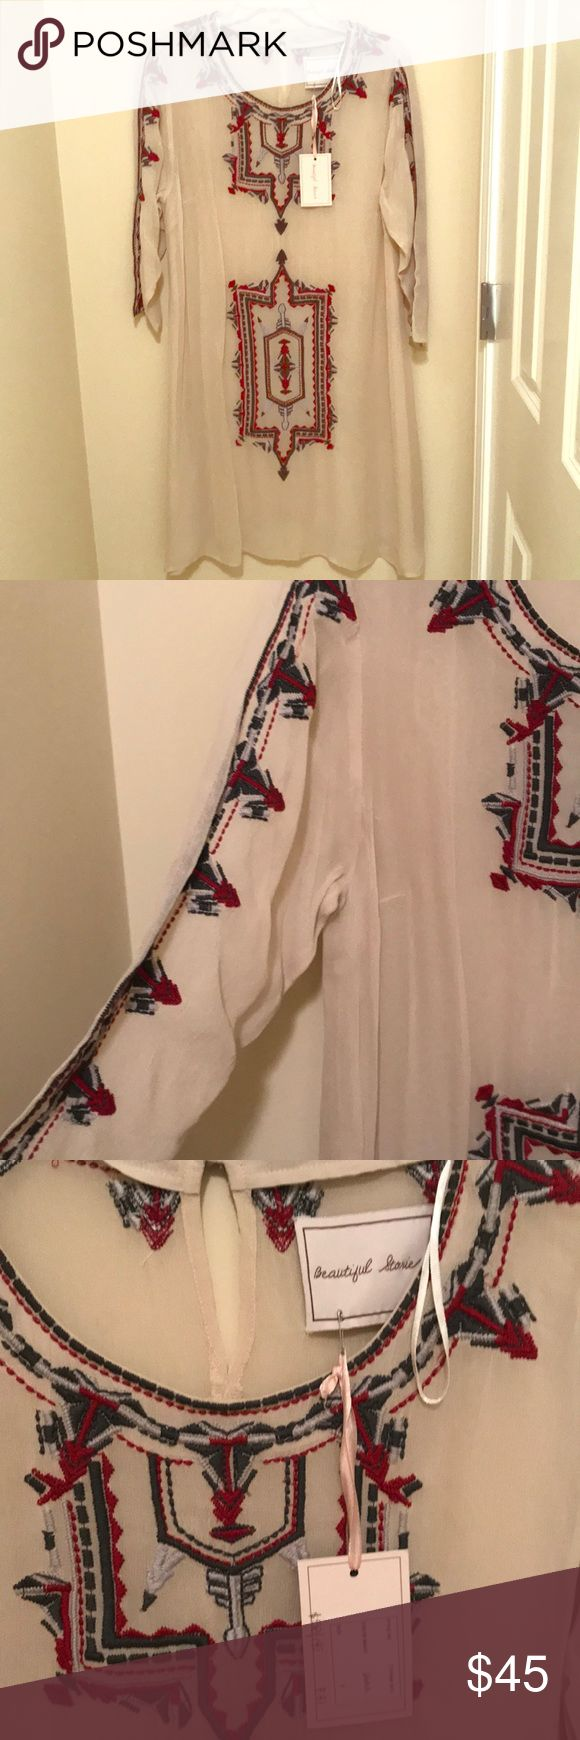 NWT Beautiful Stories Sheer Embroidered Dress Gorgeous cream/nude color sheer tunic dress with embroidered design. Beautiful Stories, sold by Anthropologie. Purchased at sample sale (meaning it could be one of a kind). Size small. No official tags for material or wash instructions. Guess would be hand wash and 100% polyester. ** would need nude slip for this. Approx measurements are armpit to armpit: 21 in and length: 37 in. Anthropologie Dresses Midi